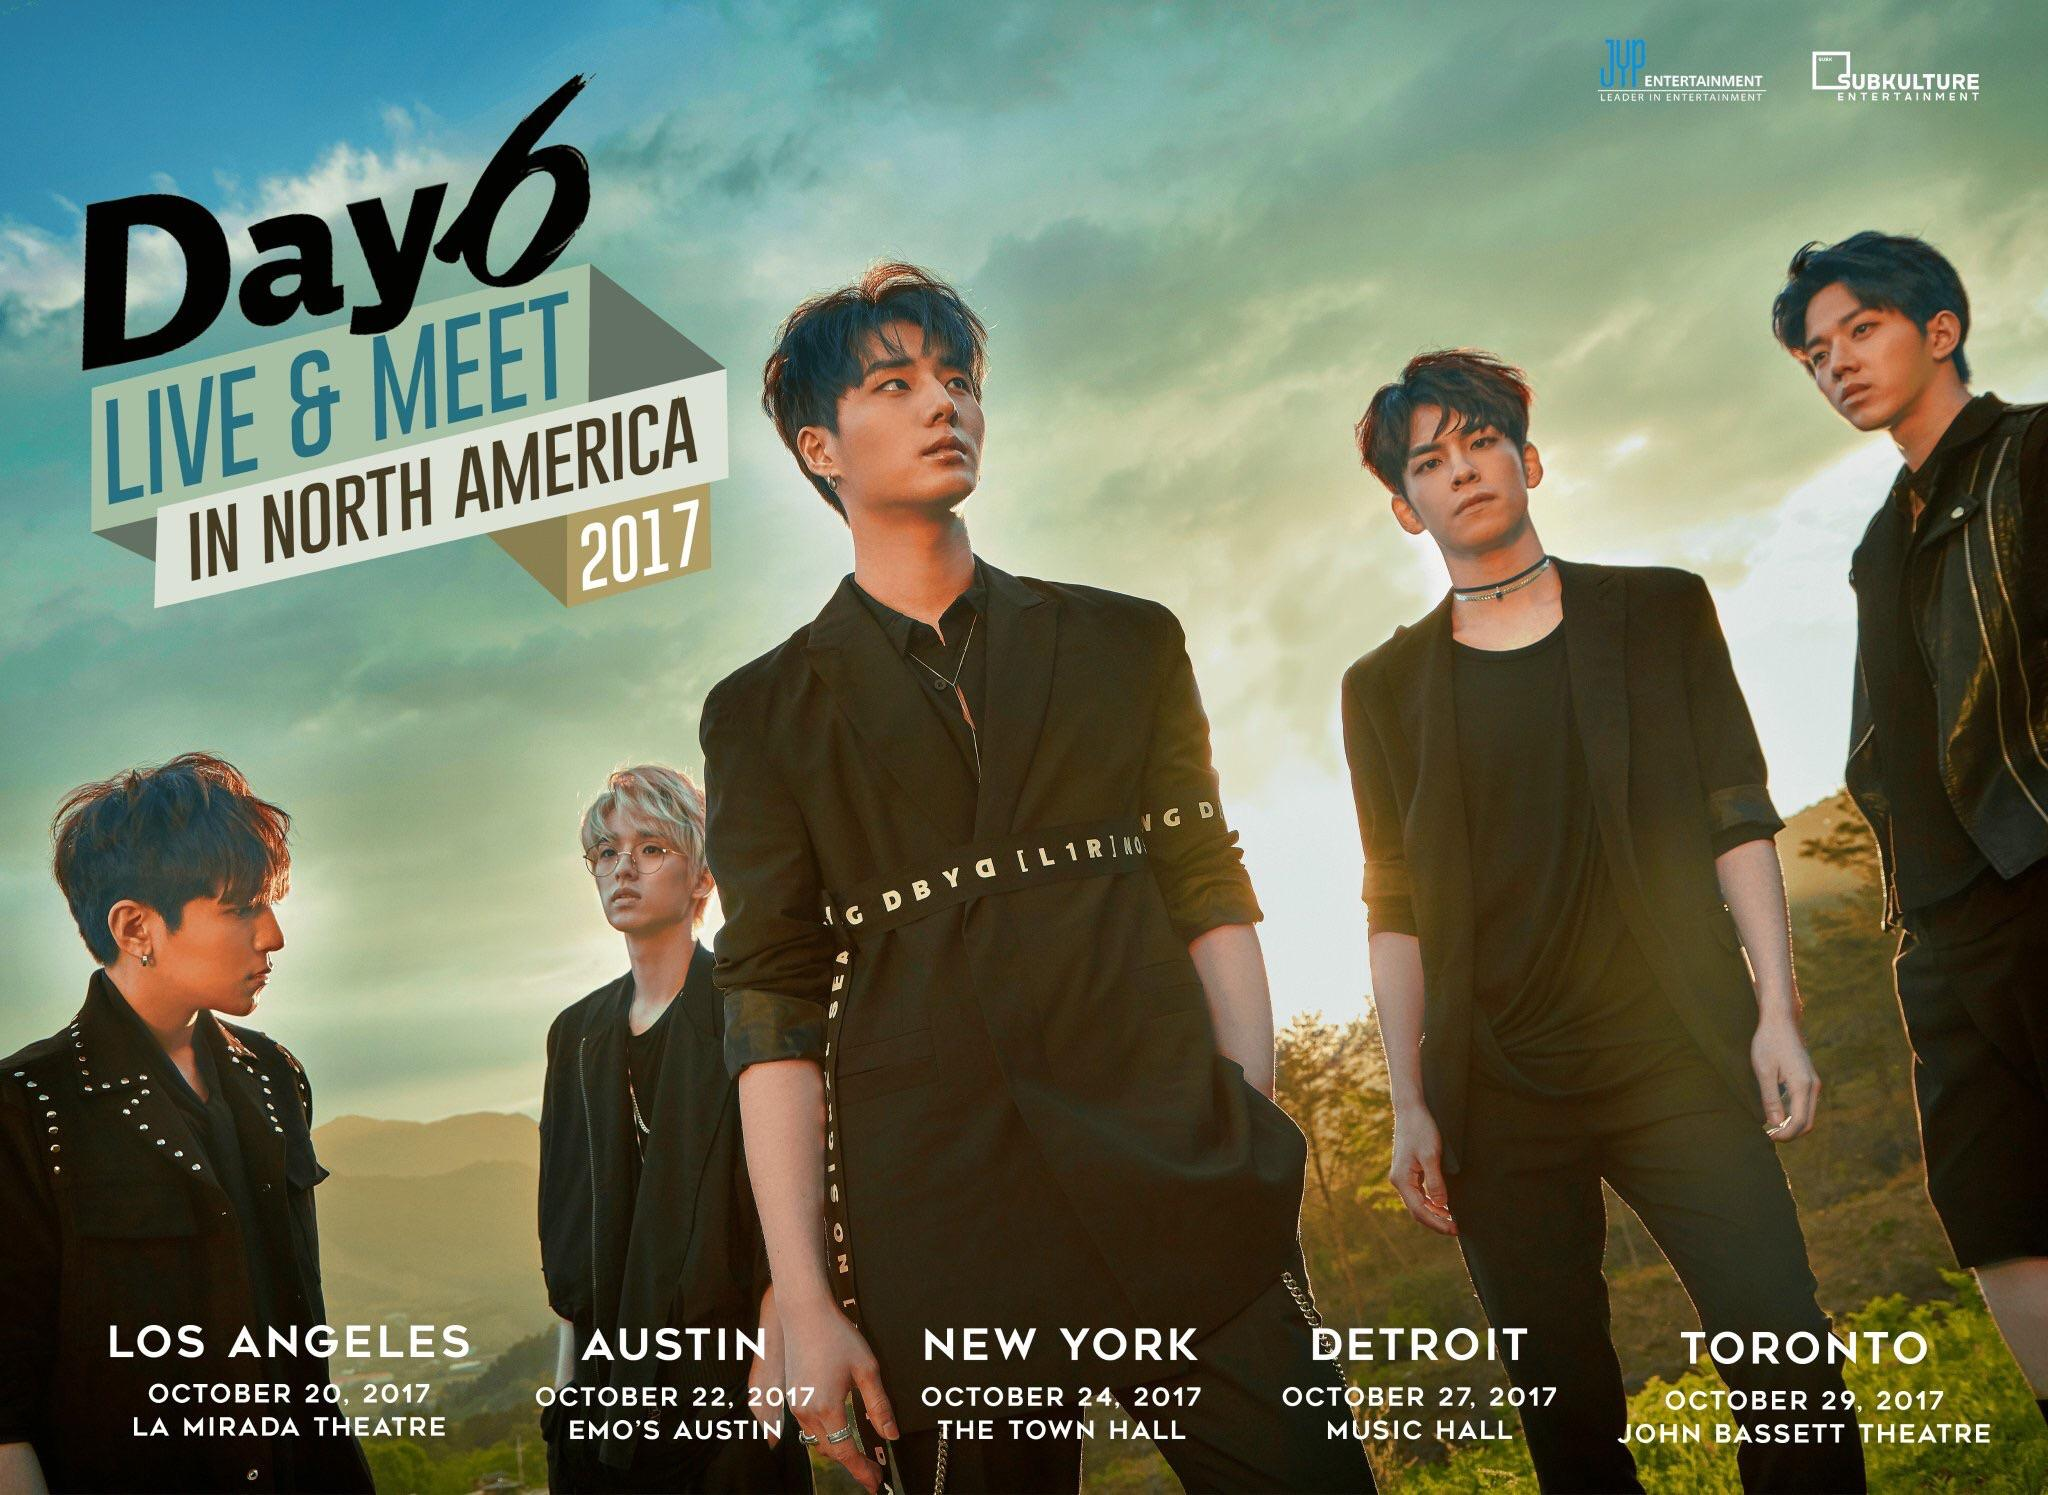 Day6 Announces Dates And Locations For 2017 North American Meet